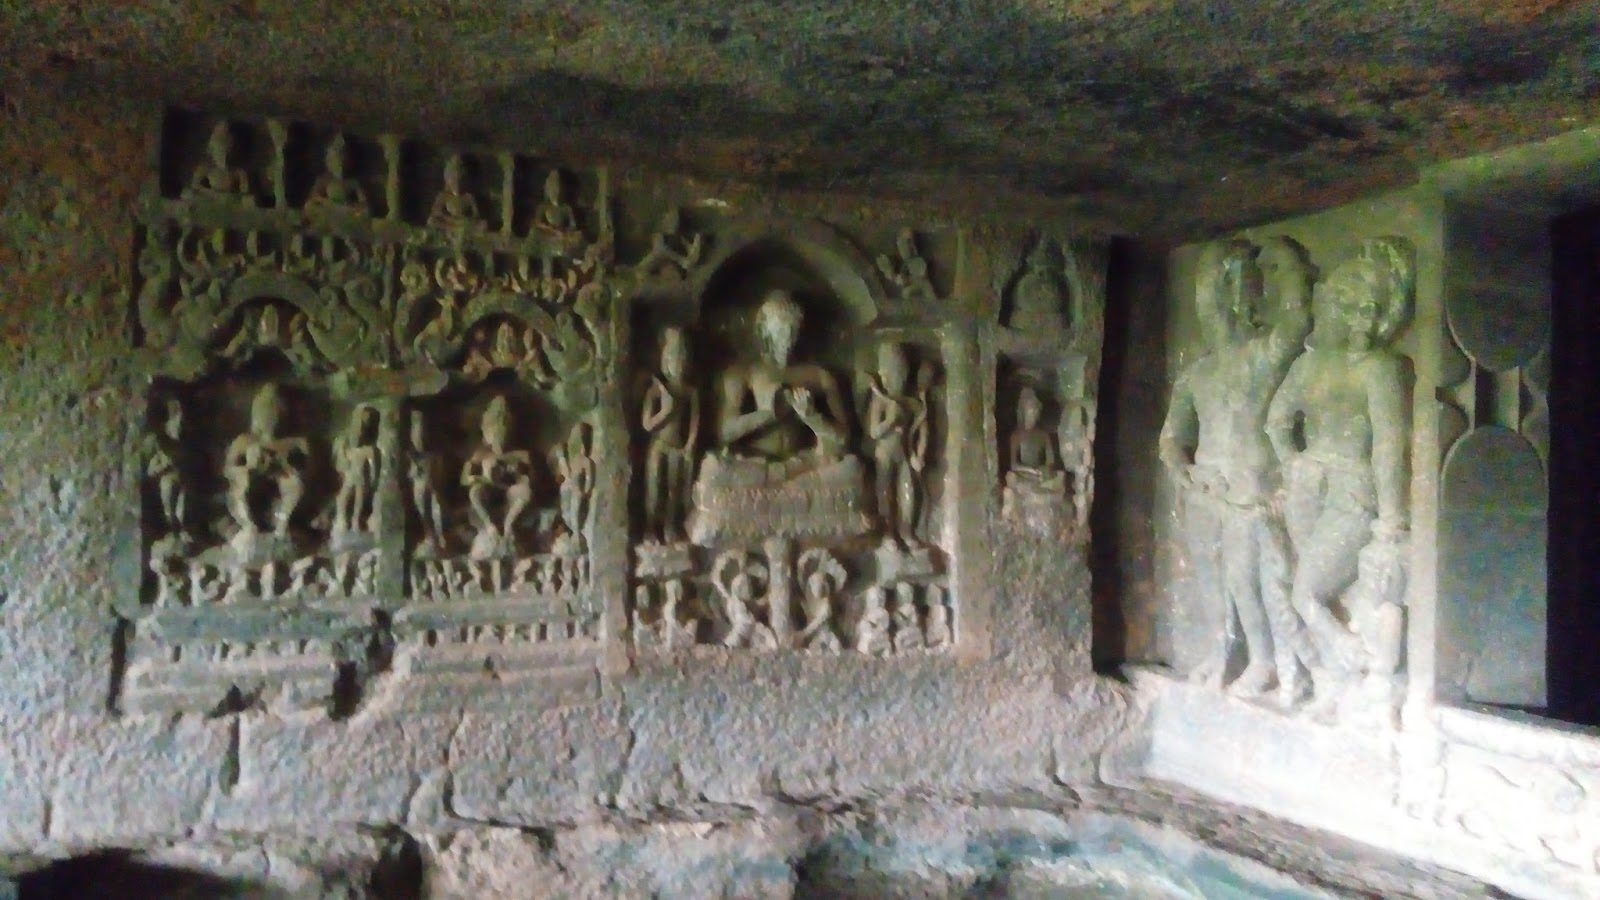 Kude caves located in rahatgad tala taluka raigad